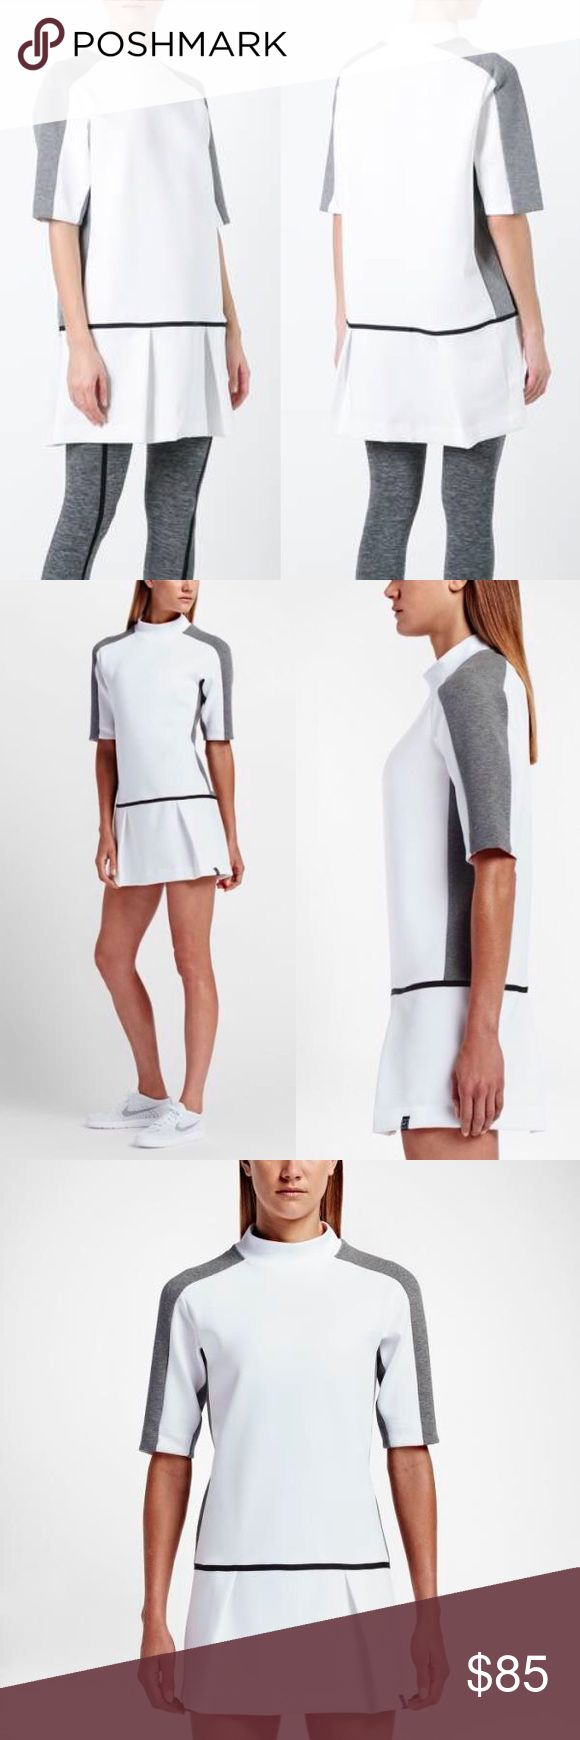 White Nike Dress White Nike dress with grey trim sleeves and drop waist. I think it's meant for tennis but is cool enough to pass as streetwear. Thick athletic polyester blend fabric. New with tags! Nike Dresses Mini